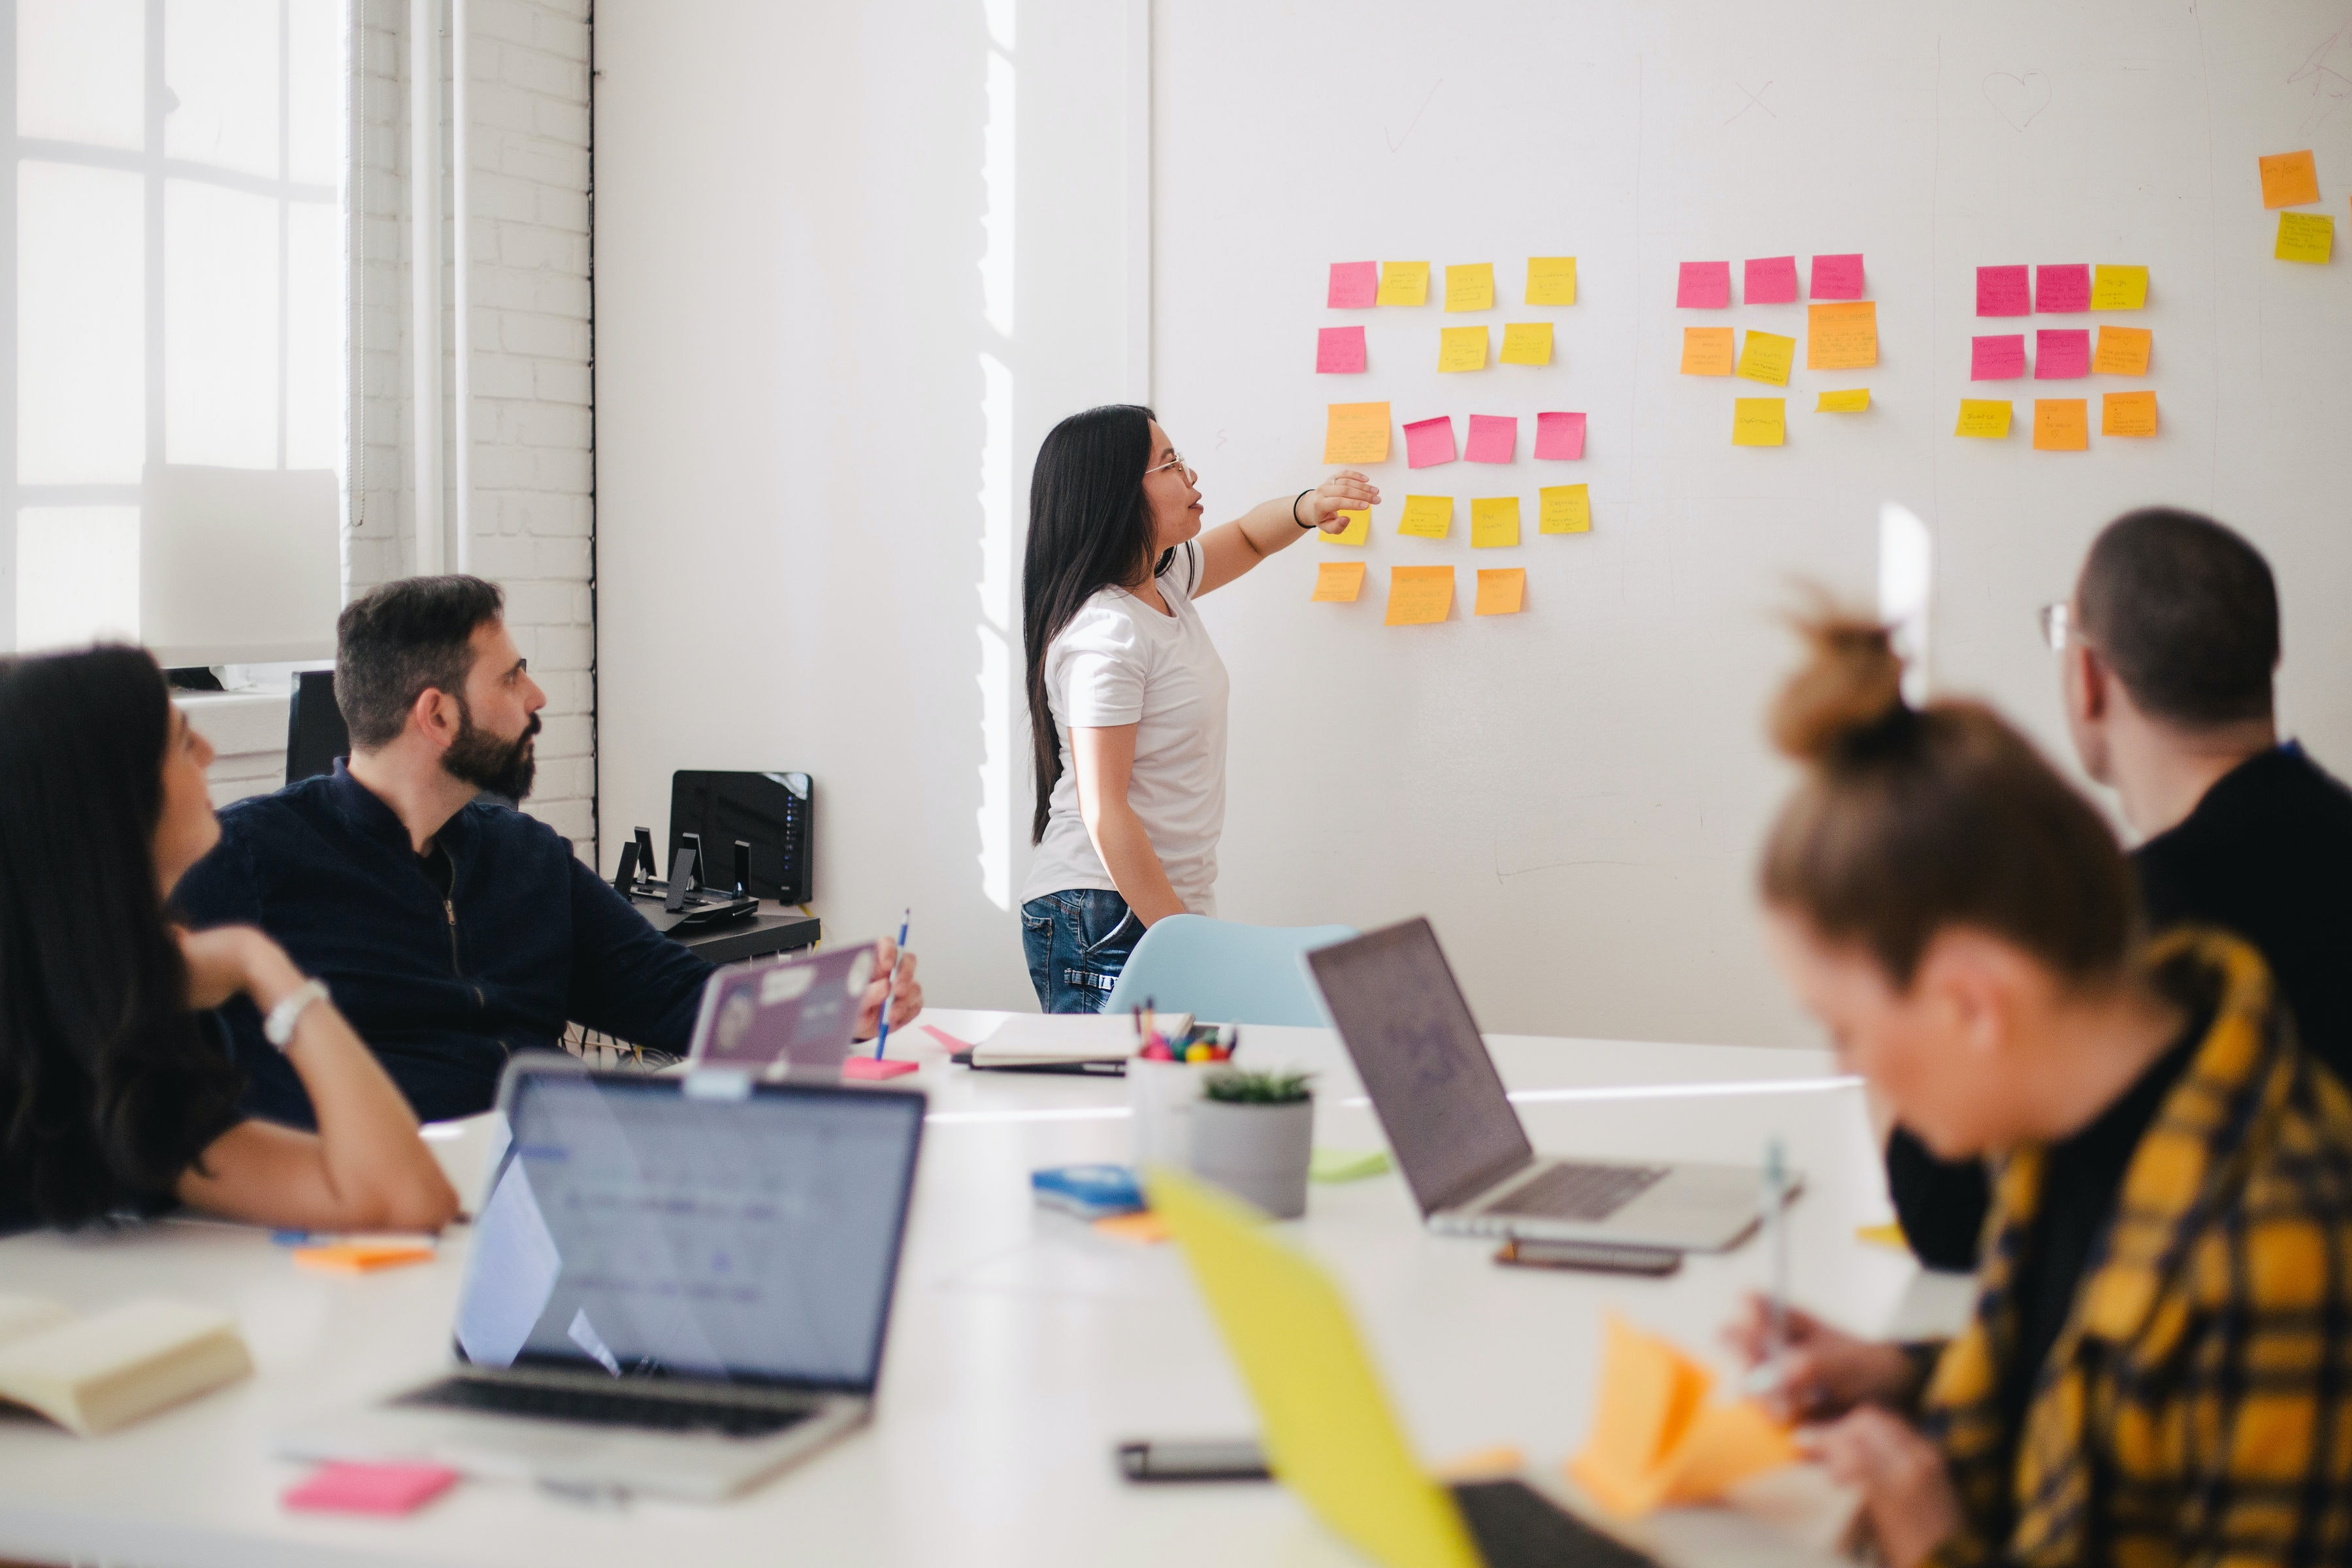 With all the ways innovation laboratories can go wrong, should your company hesitate to start up one? The answer is no, according to experts.